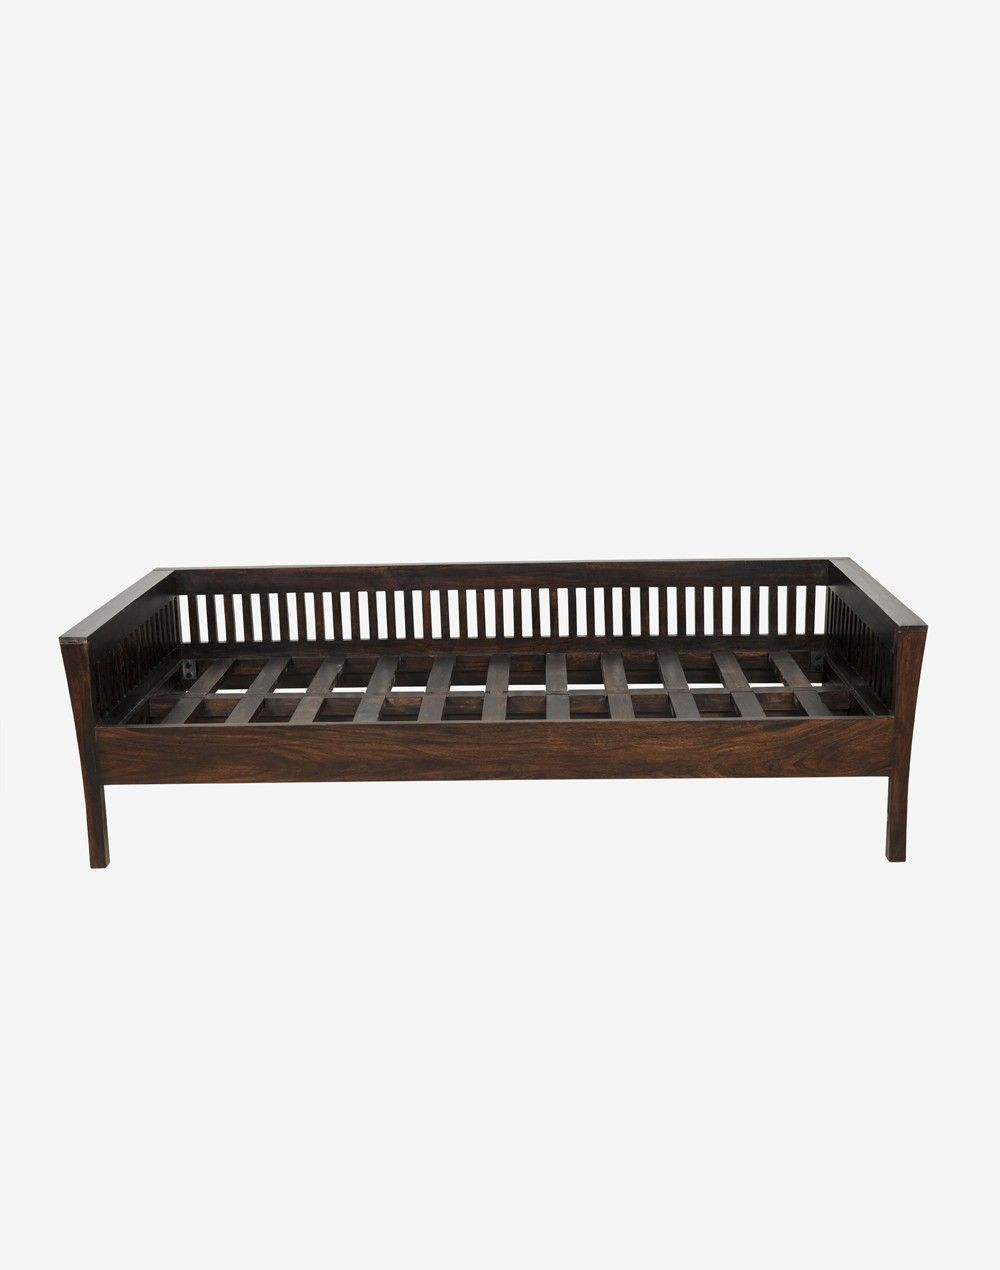 fabindia sofa designs refil sofa design living room online Fabindia.com | Sheesham Slatted Diwan. Fabindia.com | Sheesham Slatted  Diwan Living Room Furniture Online ...